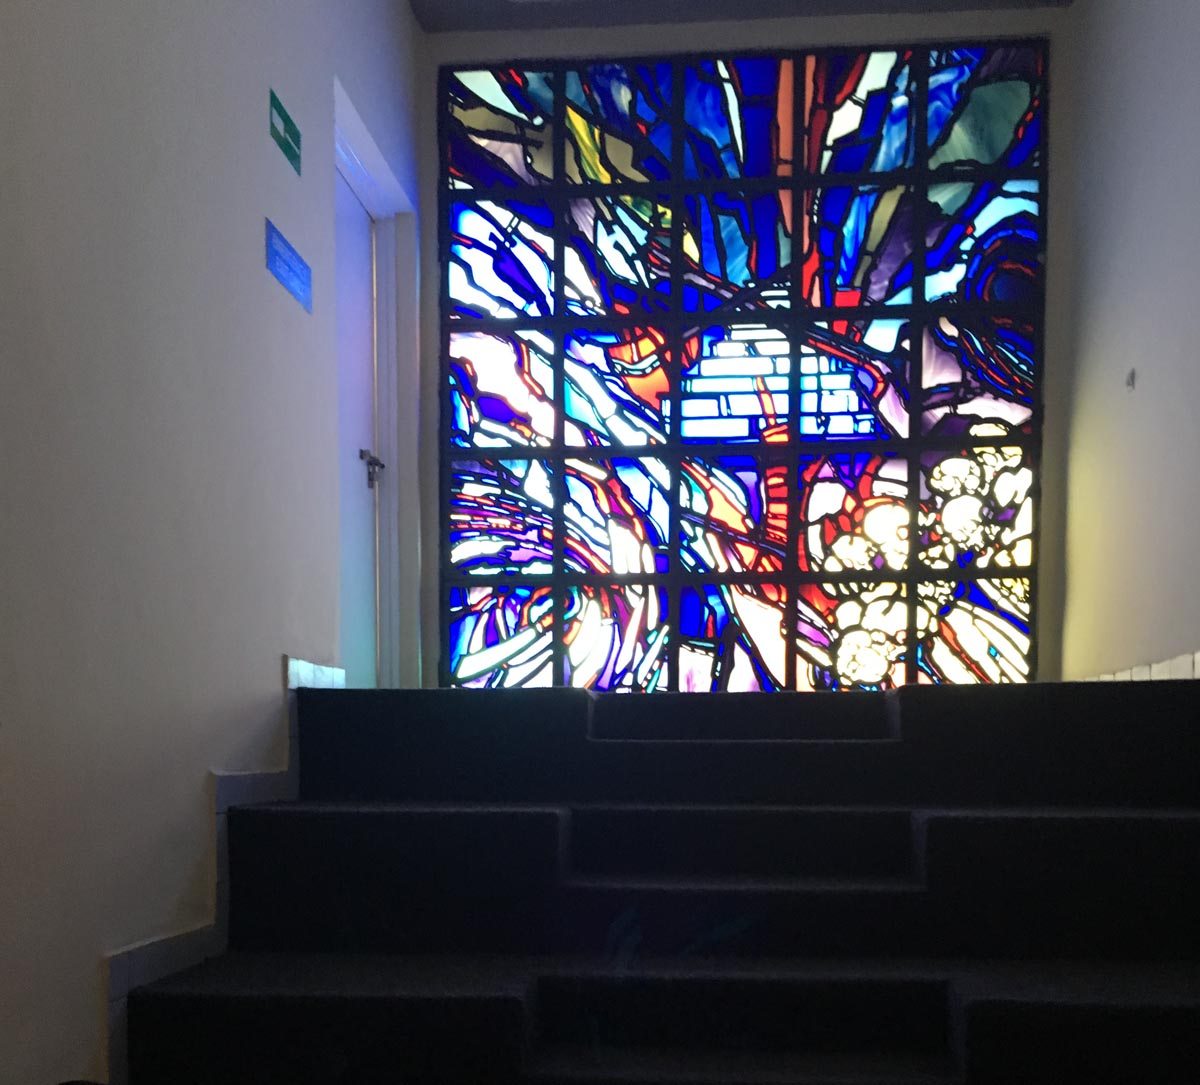 This Stained Glass Window Is One Of Two Specially Commissioned Works Of Art Created By Ardyn Halter, Son Of An Auschwitz Survivor, And Compare Rwanda's Genocide To The Holocaust.